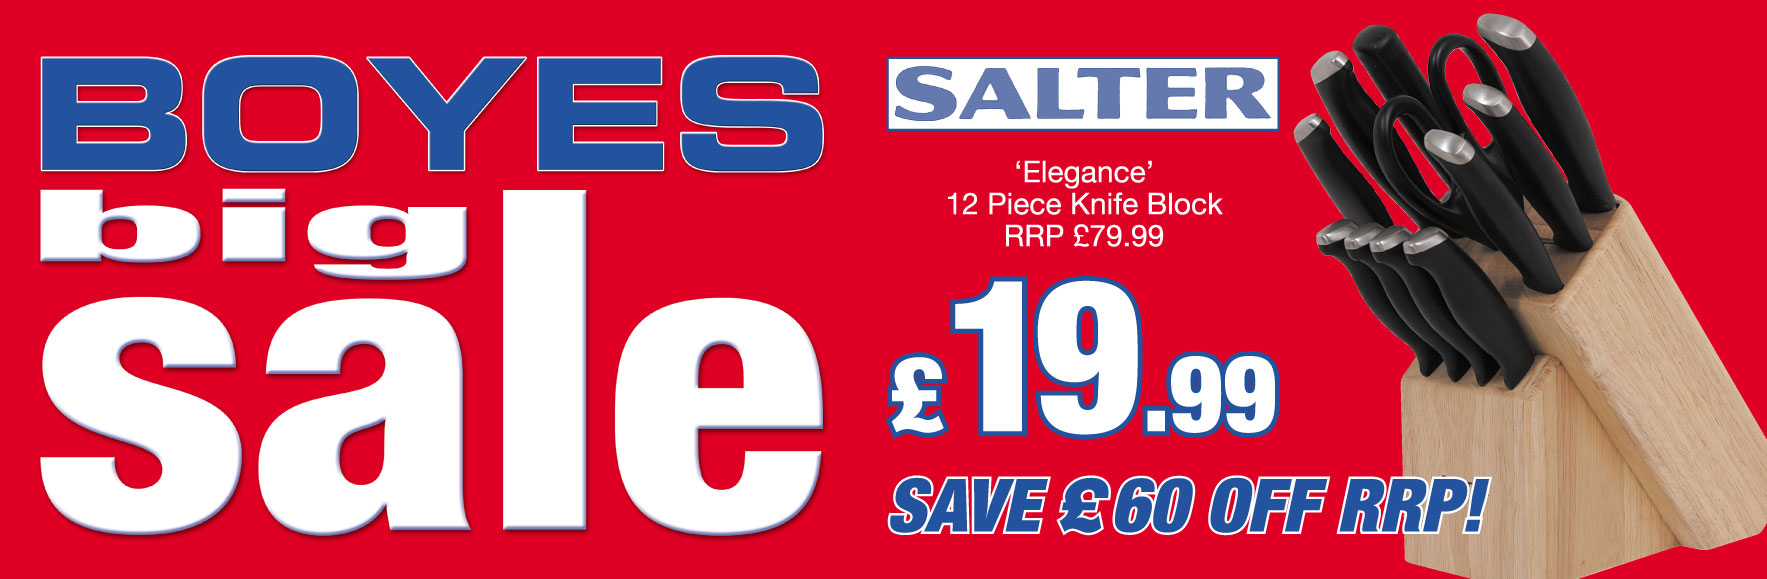 Salter Elegance 12 piece knife block RRP £79.99 NOW £19.99